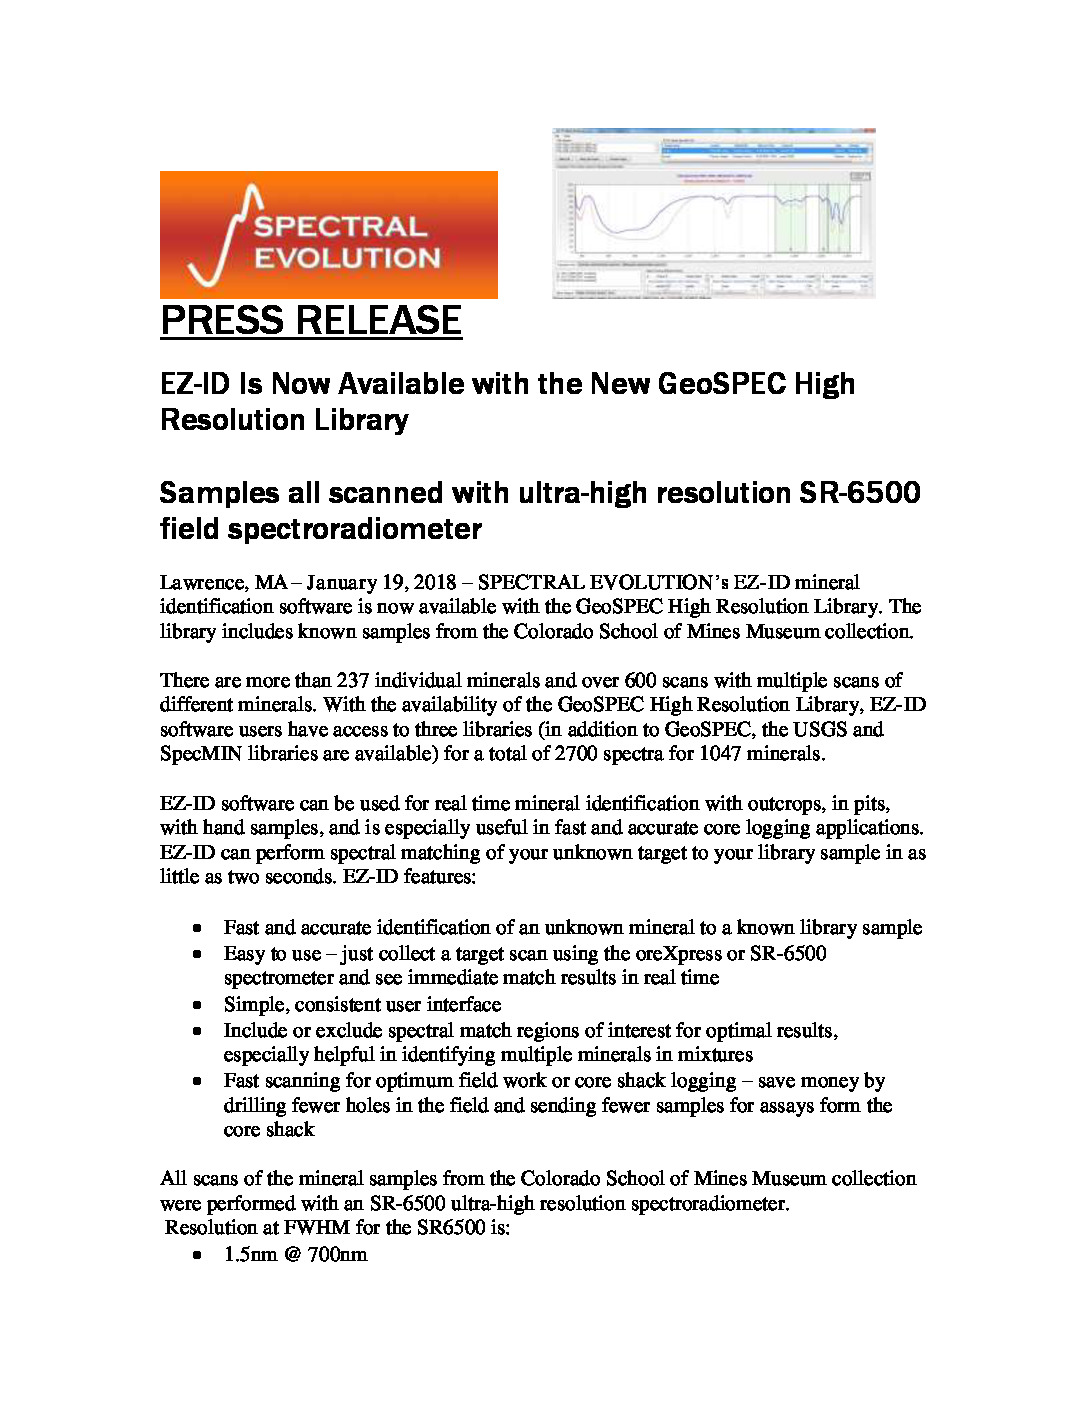 thumbnail of Geospec_high-resolution_library